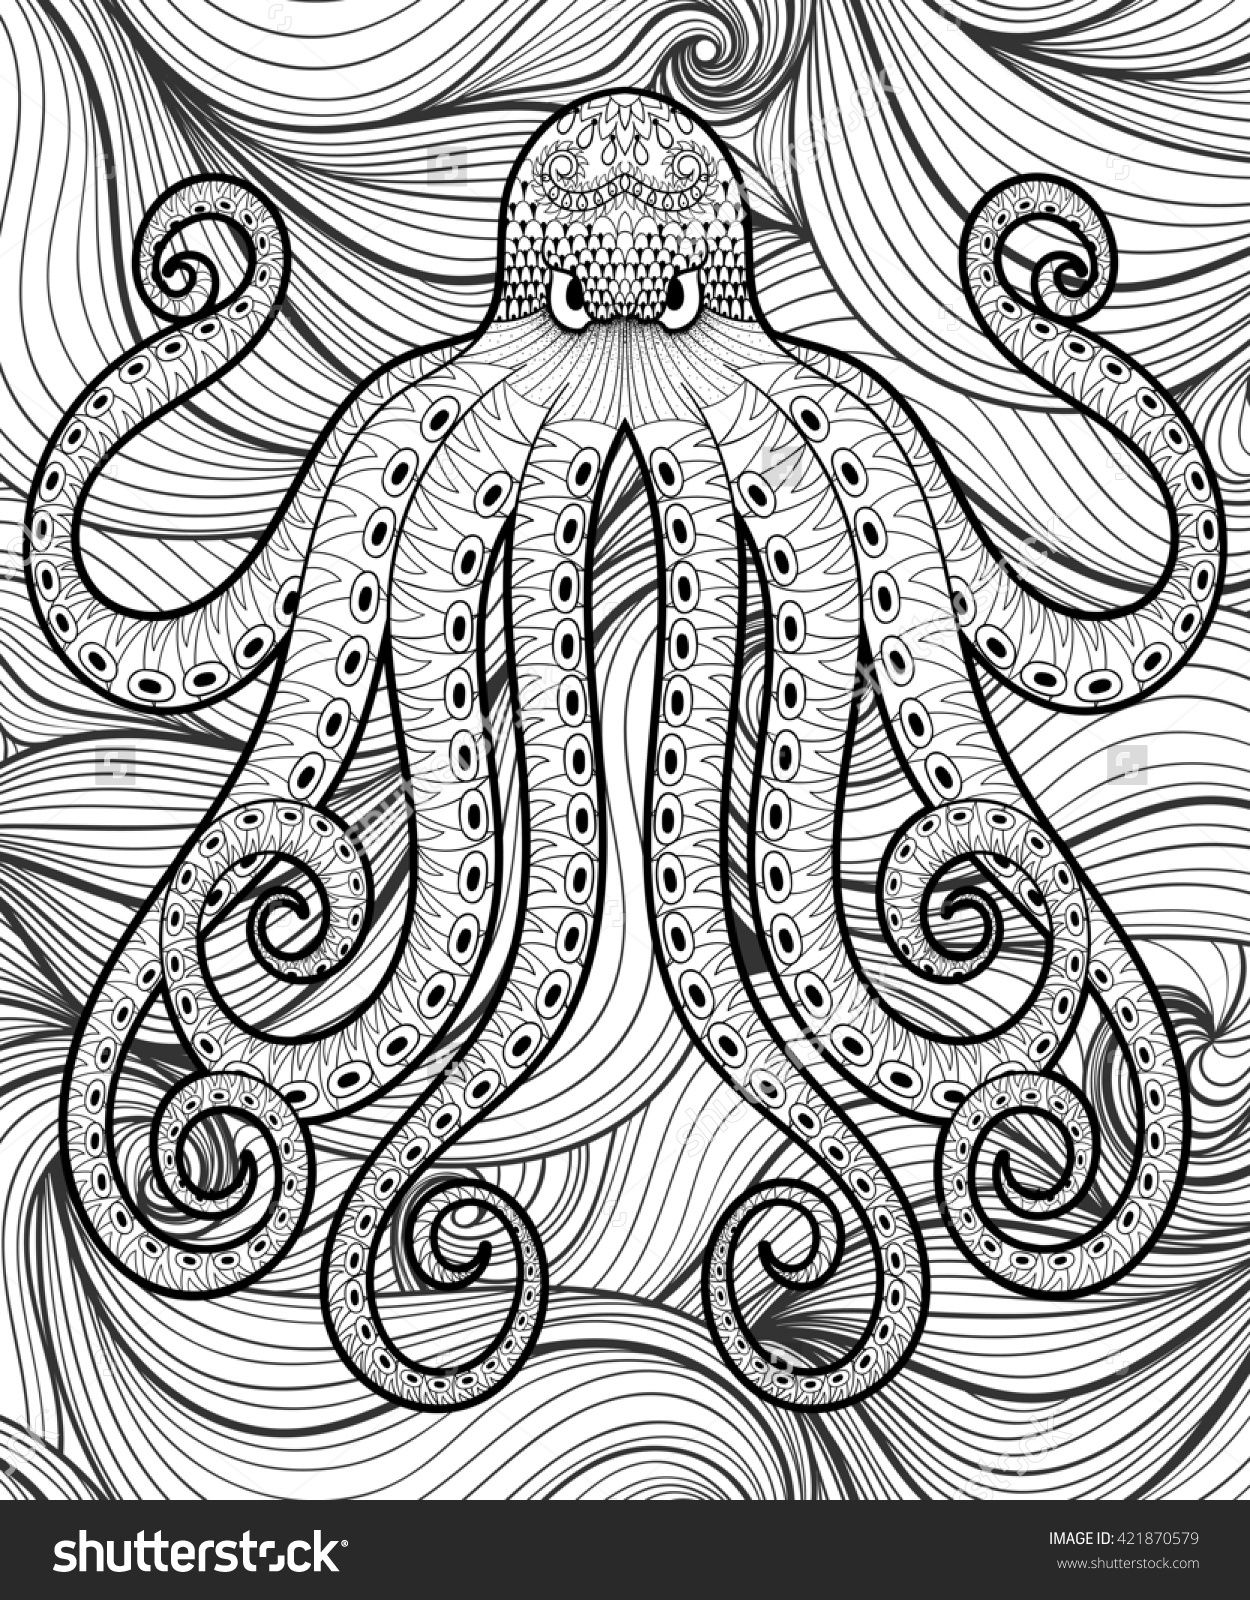 Zentangle octopus in sea for adult coloring page Sea